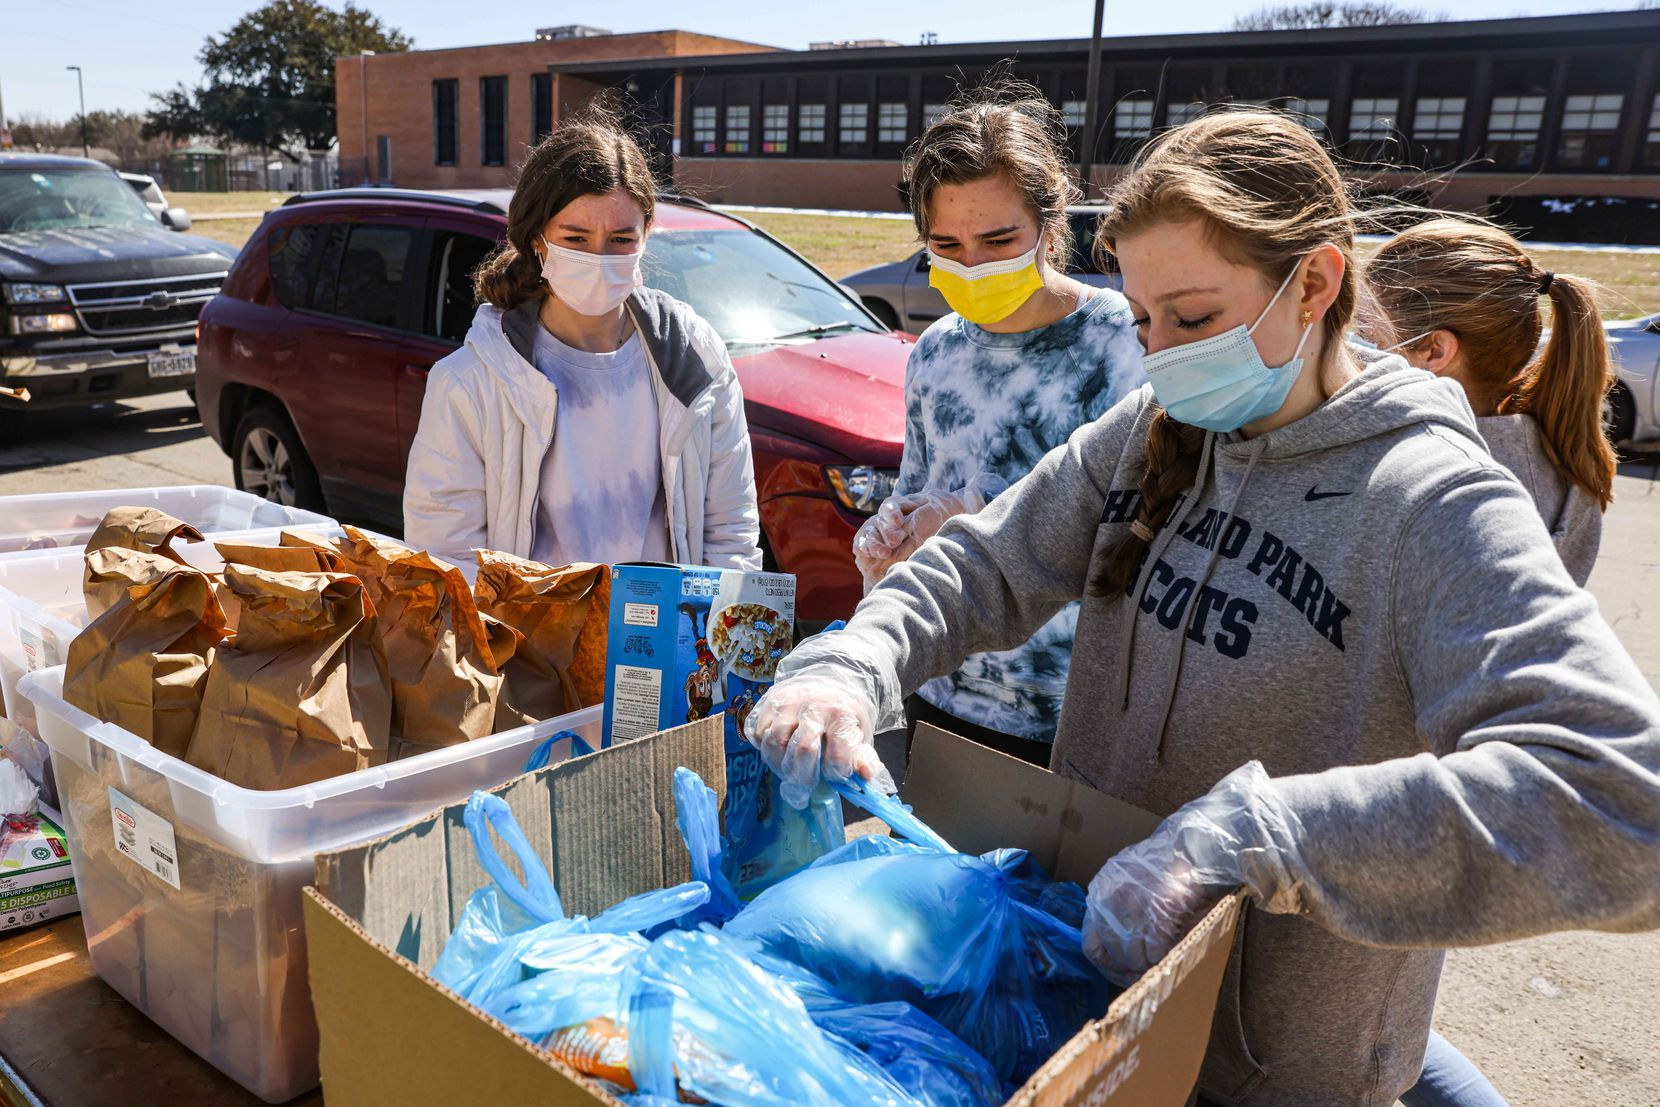 From left, volunteers Ellie Donahoe, 15, Caroline Vallard, 15, and Jullian Miller, 15, distribute food aid to the community at Ledbetter food pantry in Iglesia El Calvario as temperatures start to rise and the snow accumulated after the passage of snowstorm Uri begins to melt in Dallas on Friday, February 19, 2021. (Lola Gomez/The Dallas Morning News)